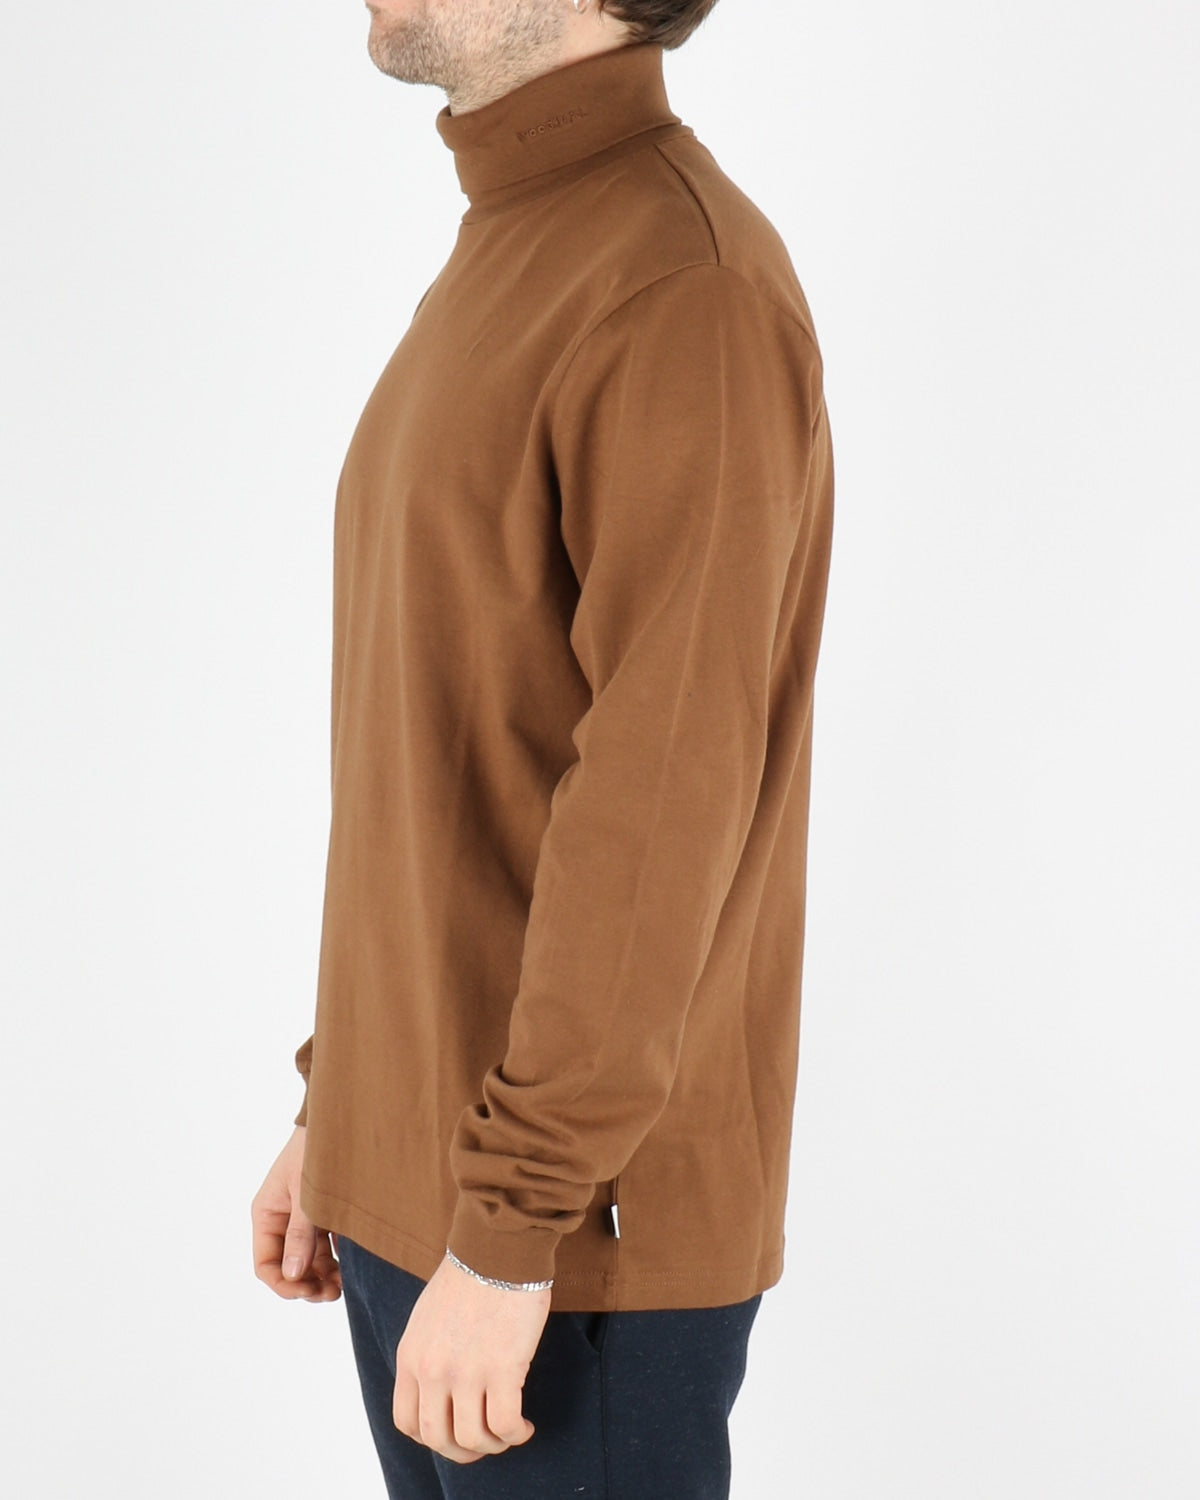 woodbird_amin turtleneck_brownie_4_4